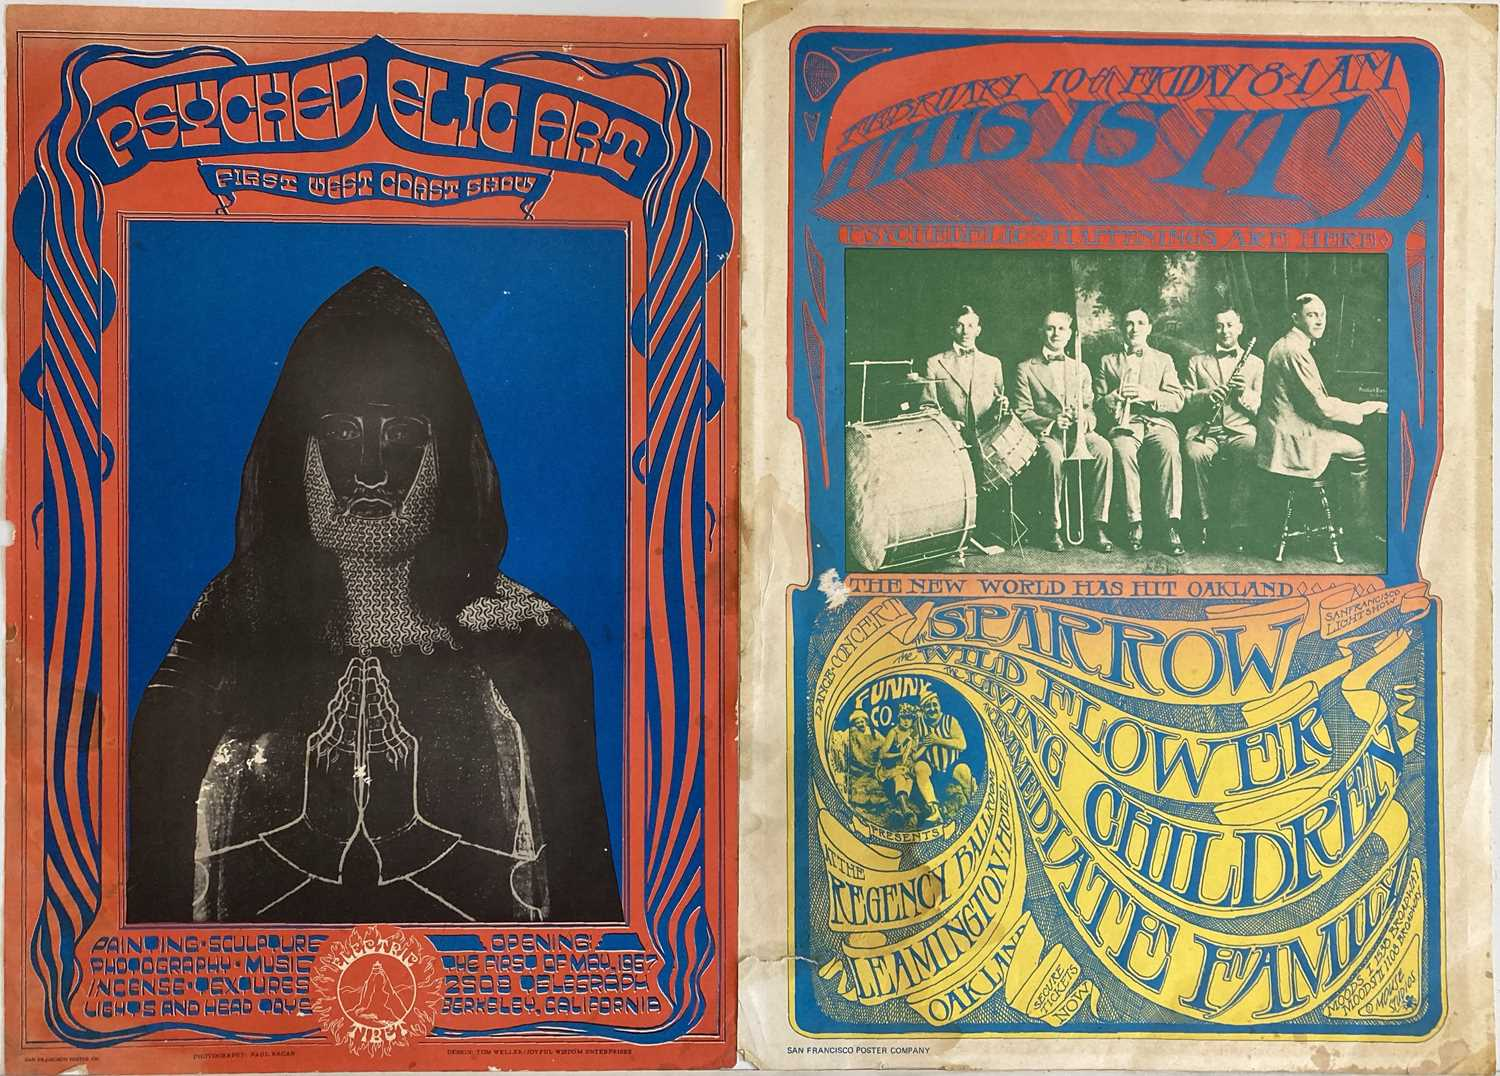 SAN FRANCISCO PSYCHEDELIC POSTERS.